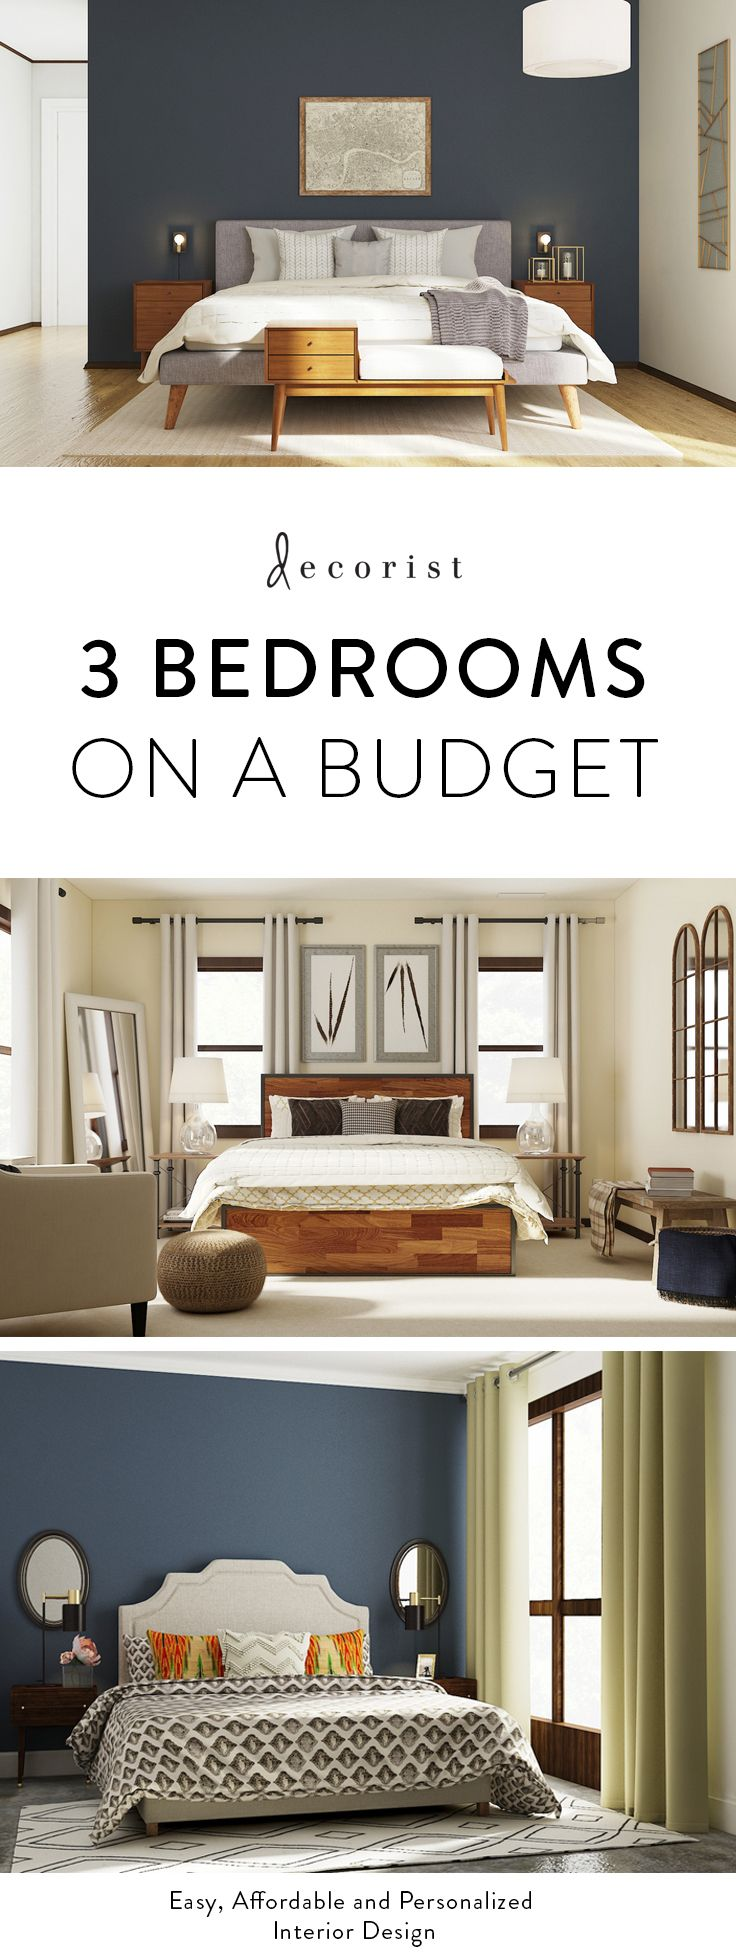 3 amazing bedroom transformations on a budget